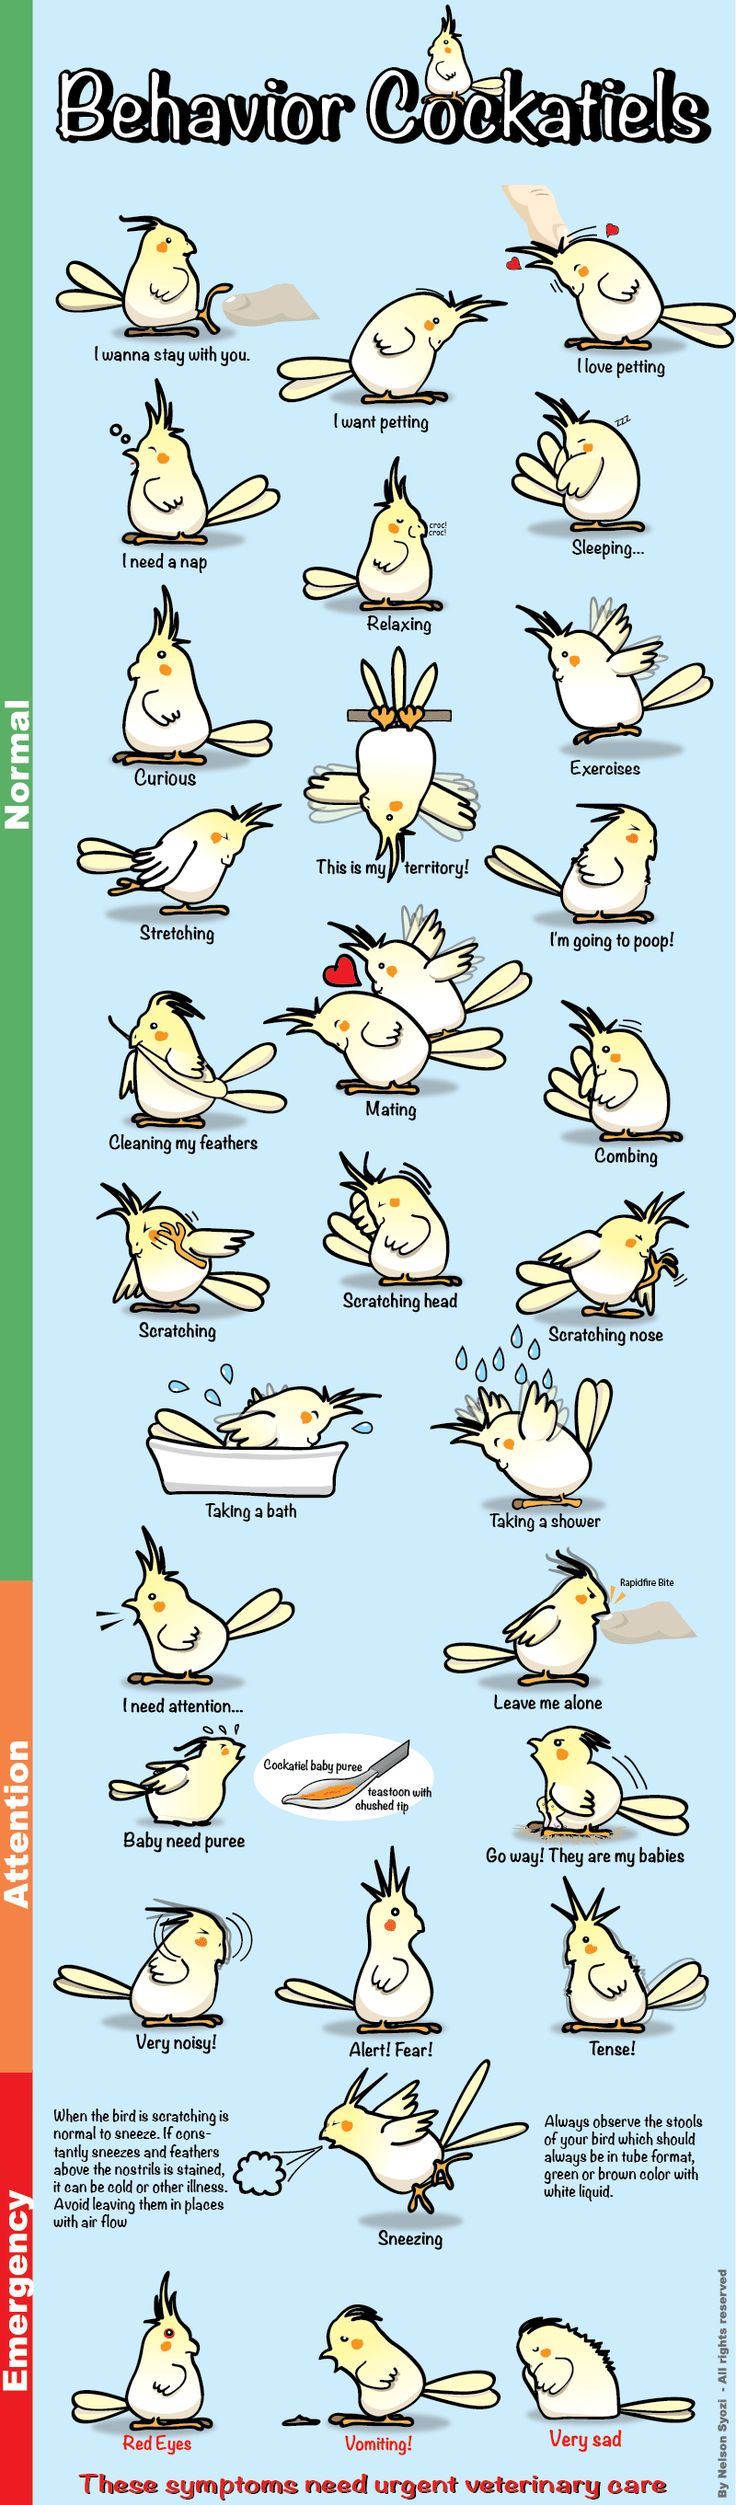 Behavior guide for cockatiels.  They are the most amusing birds!